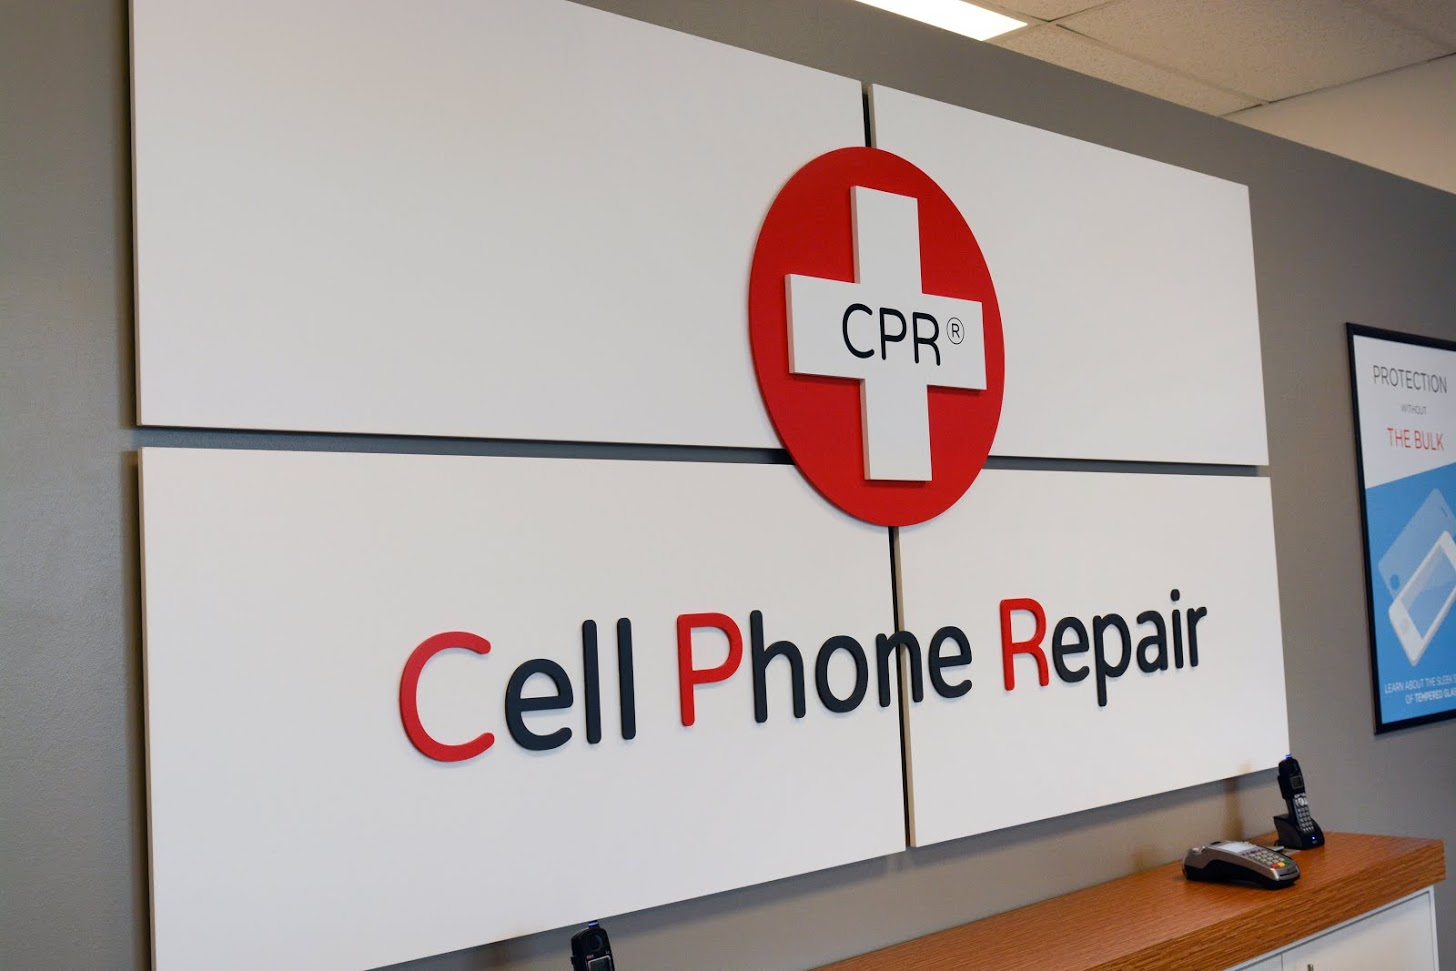 Motorola Increases Smartphone Repair Options with CPR Cell Phone